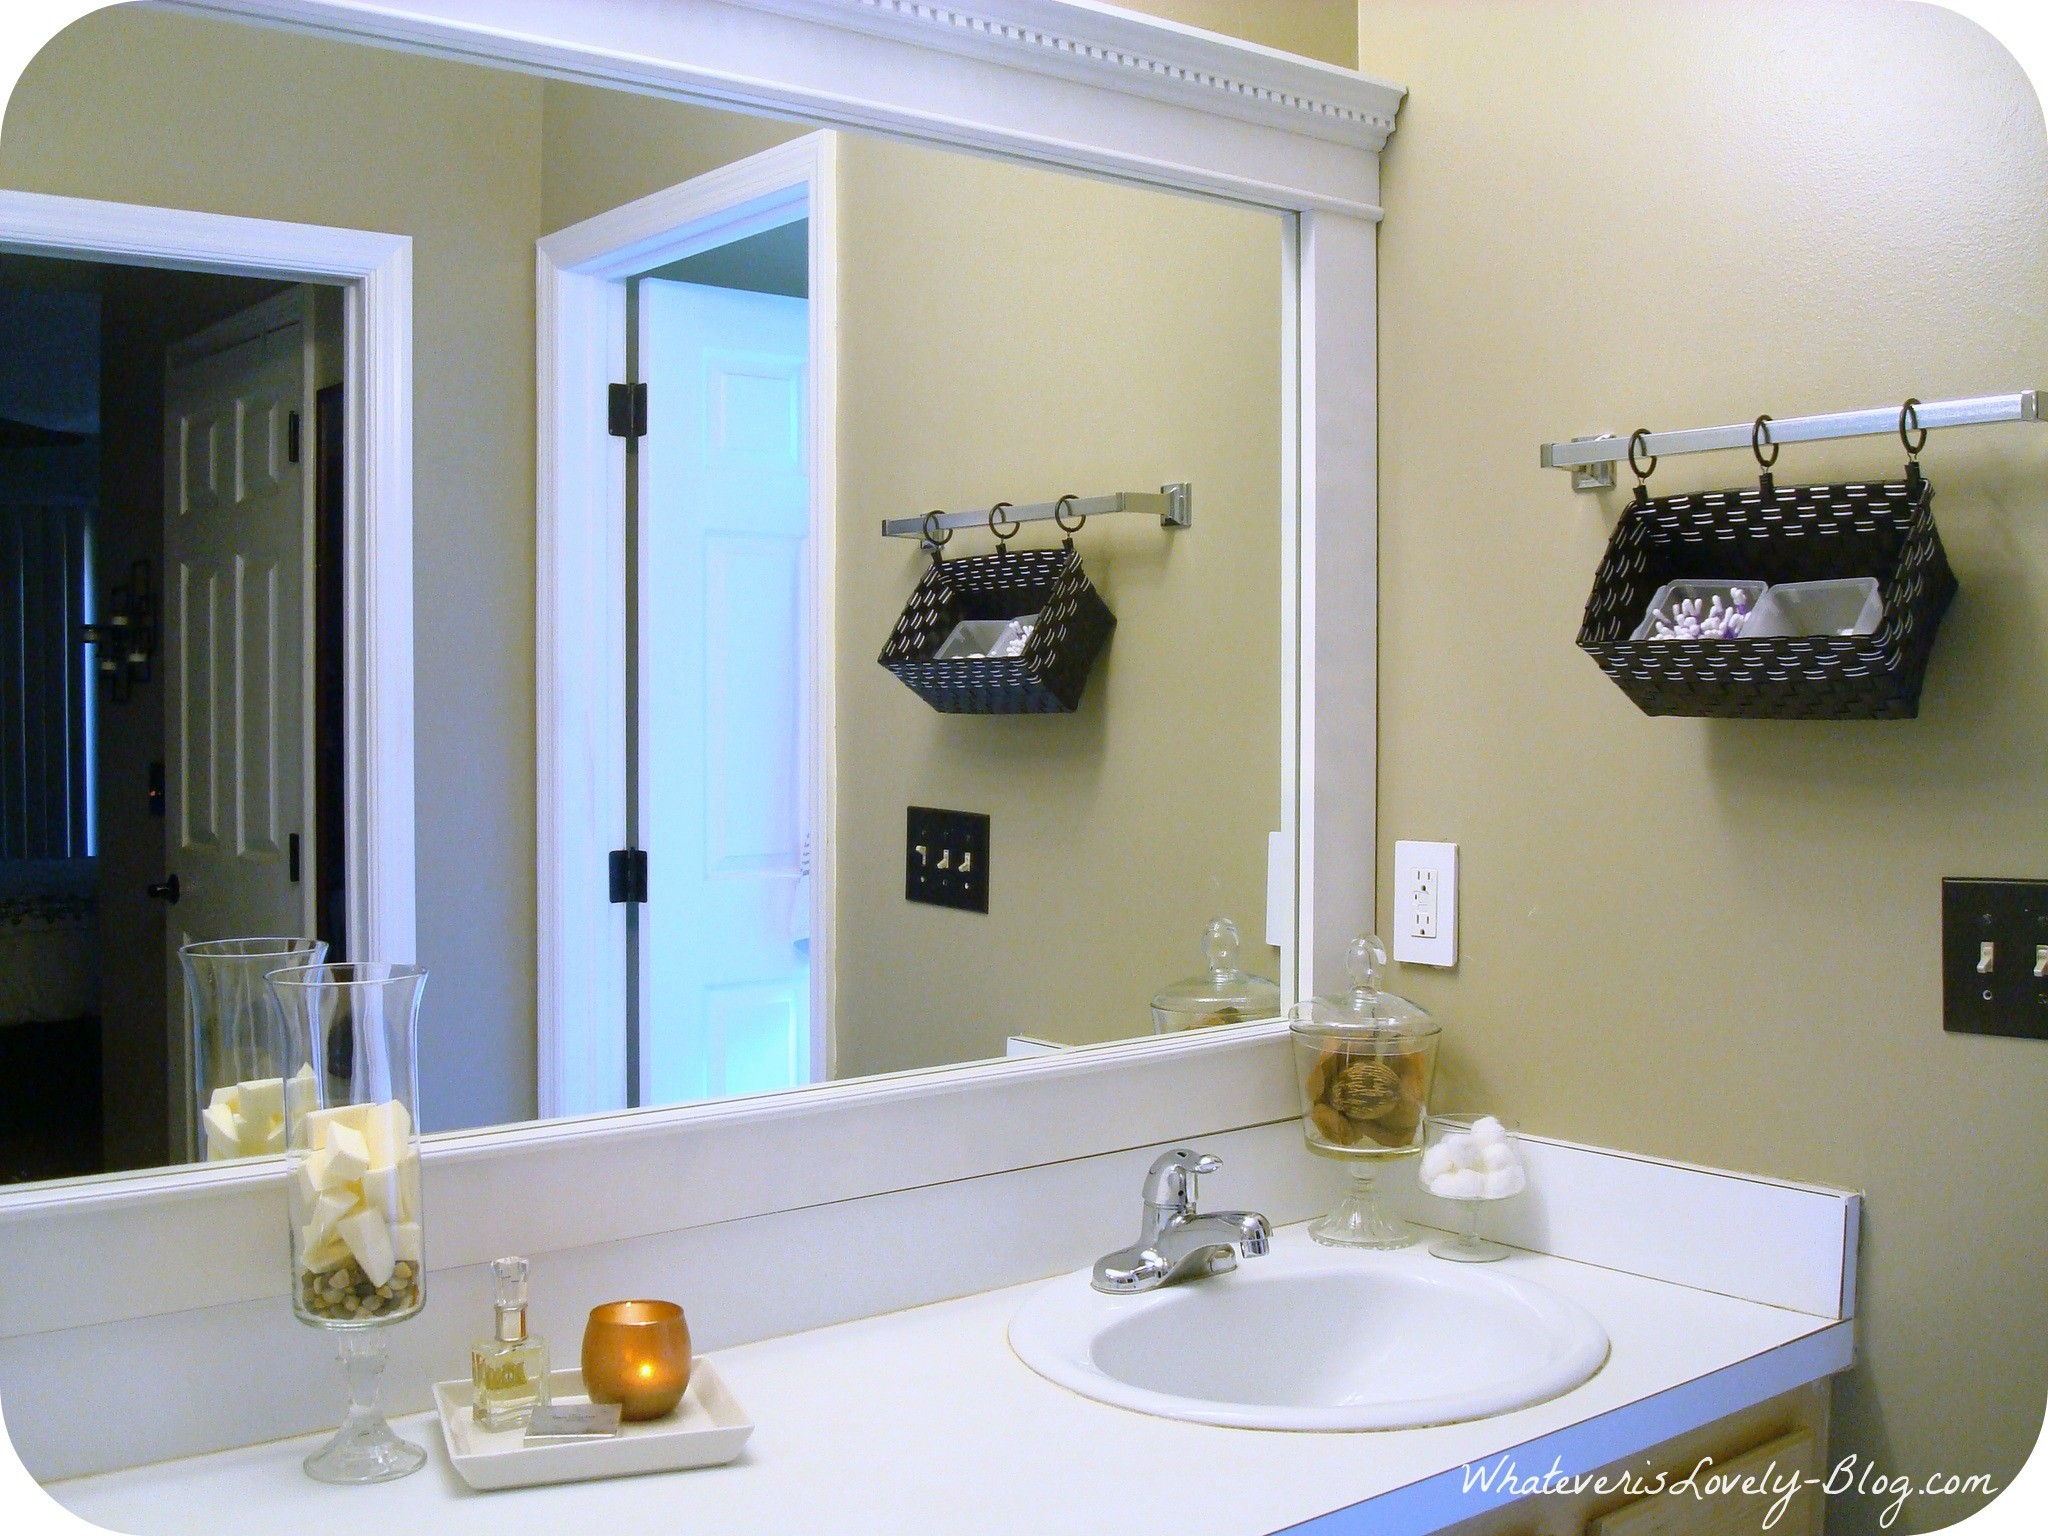 kerry complete bathroom my mirror framing house a of